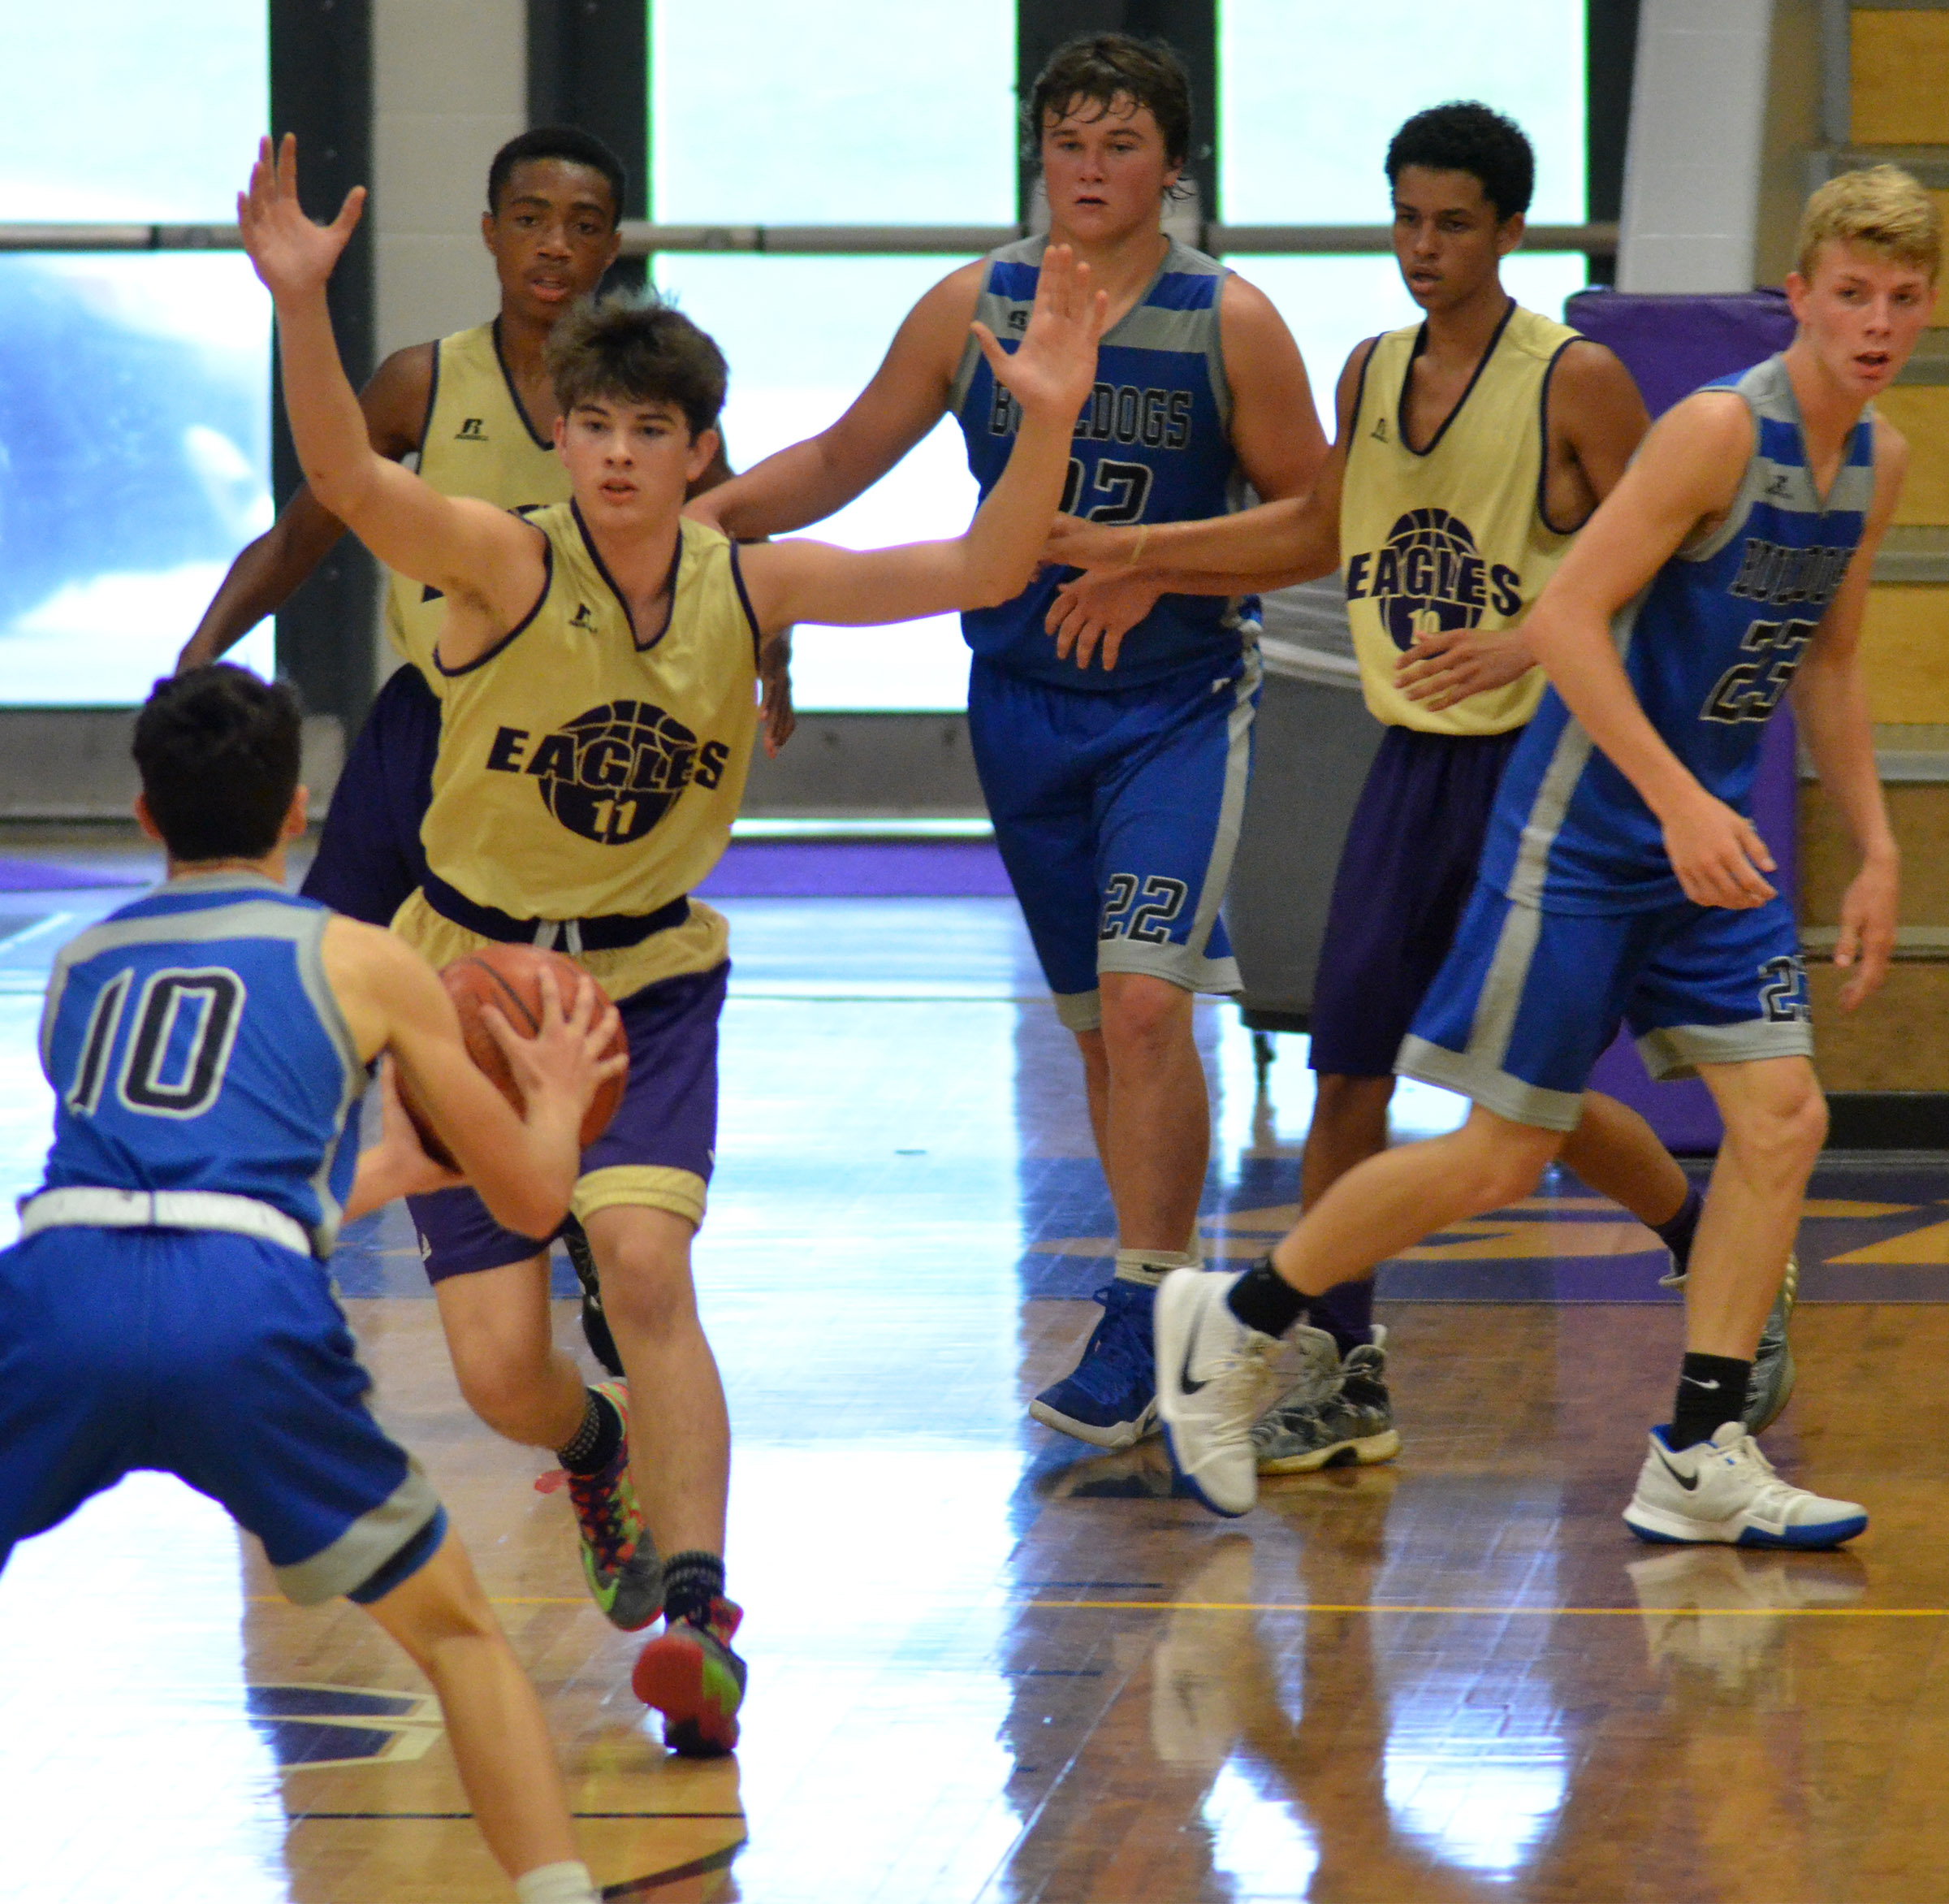 CHS sophomore Mark Rigsby plays defense, with teammates Lathan Cubit and Mikael Vaught, also sophomores, in back.